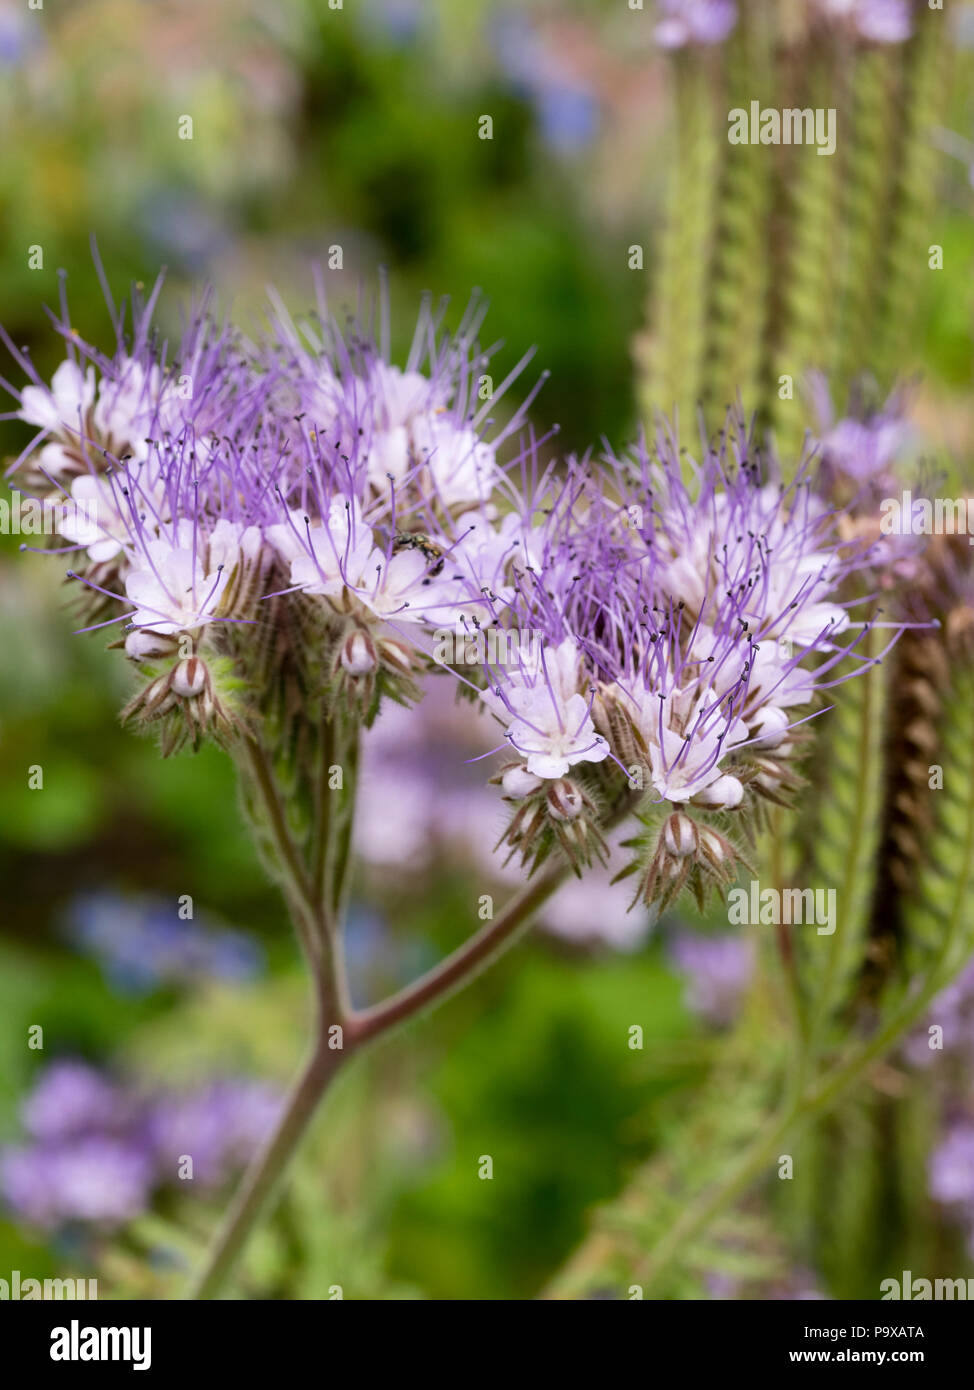 Pale lavender coloured flowers of the insect attracting hardy annual pale lavender coloured flowers of the insect attracting hardy annual flower arrangers blooms phacelia tanacetifolia izmirmasajfo